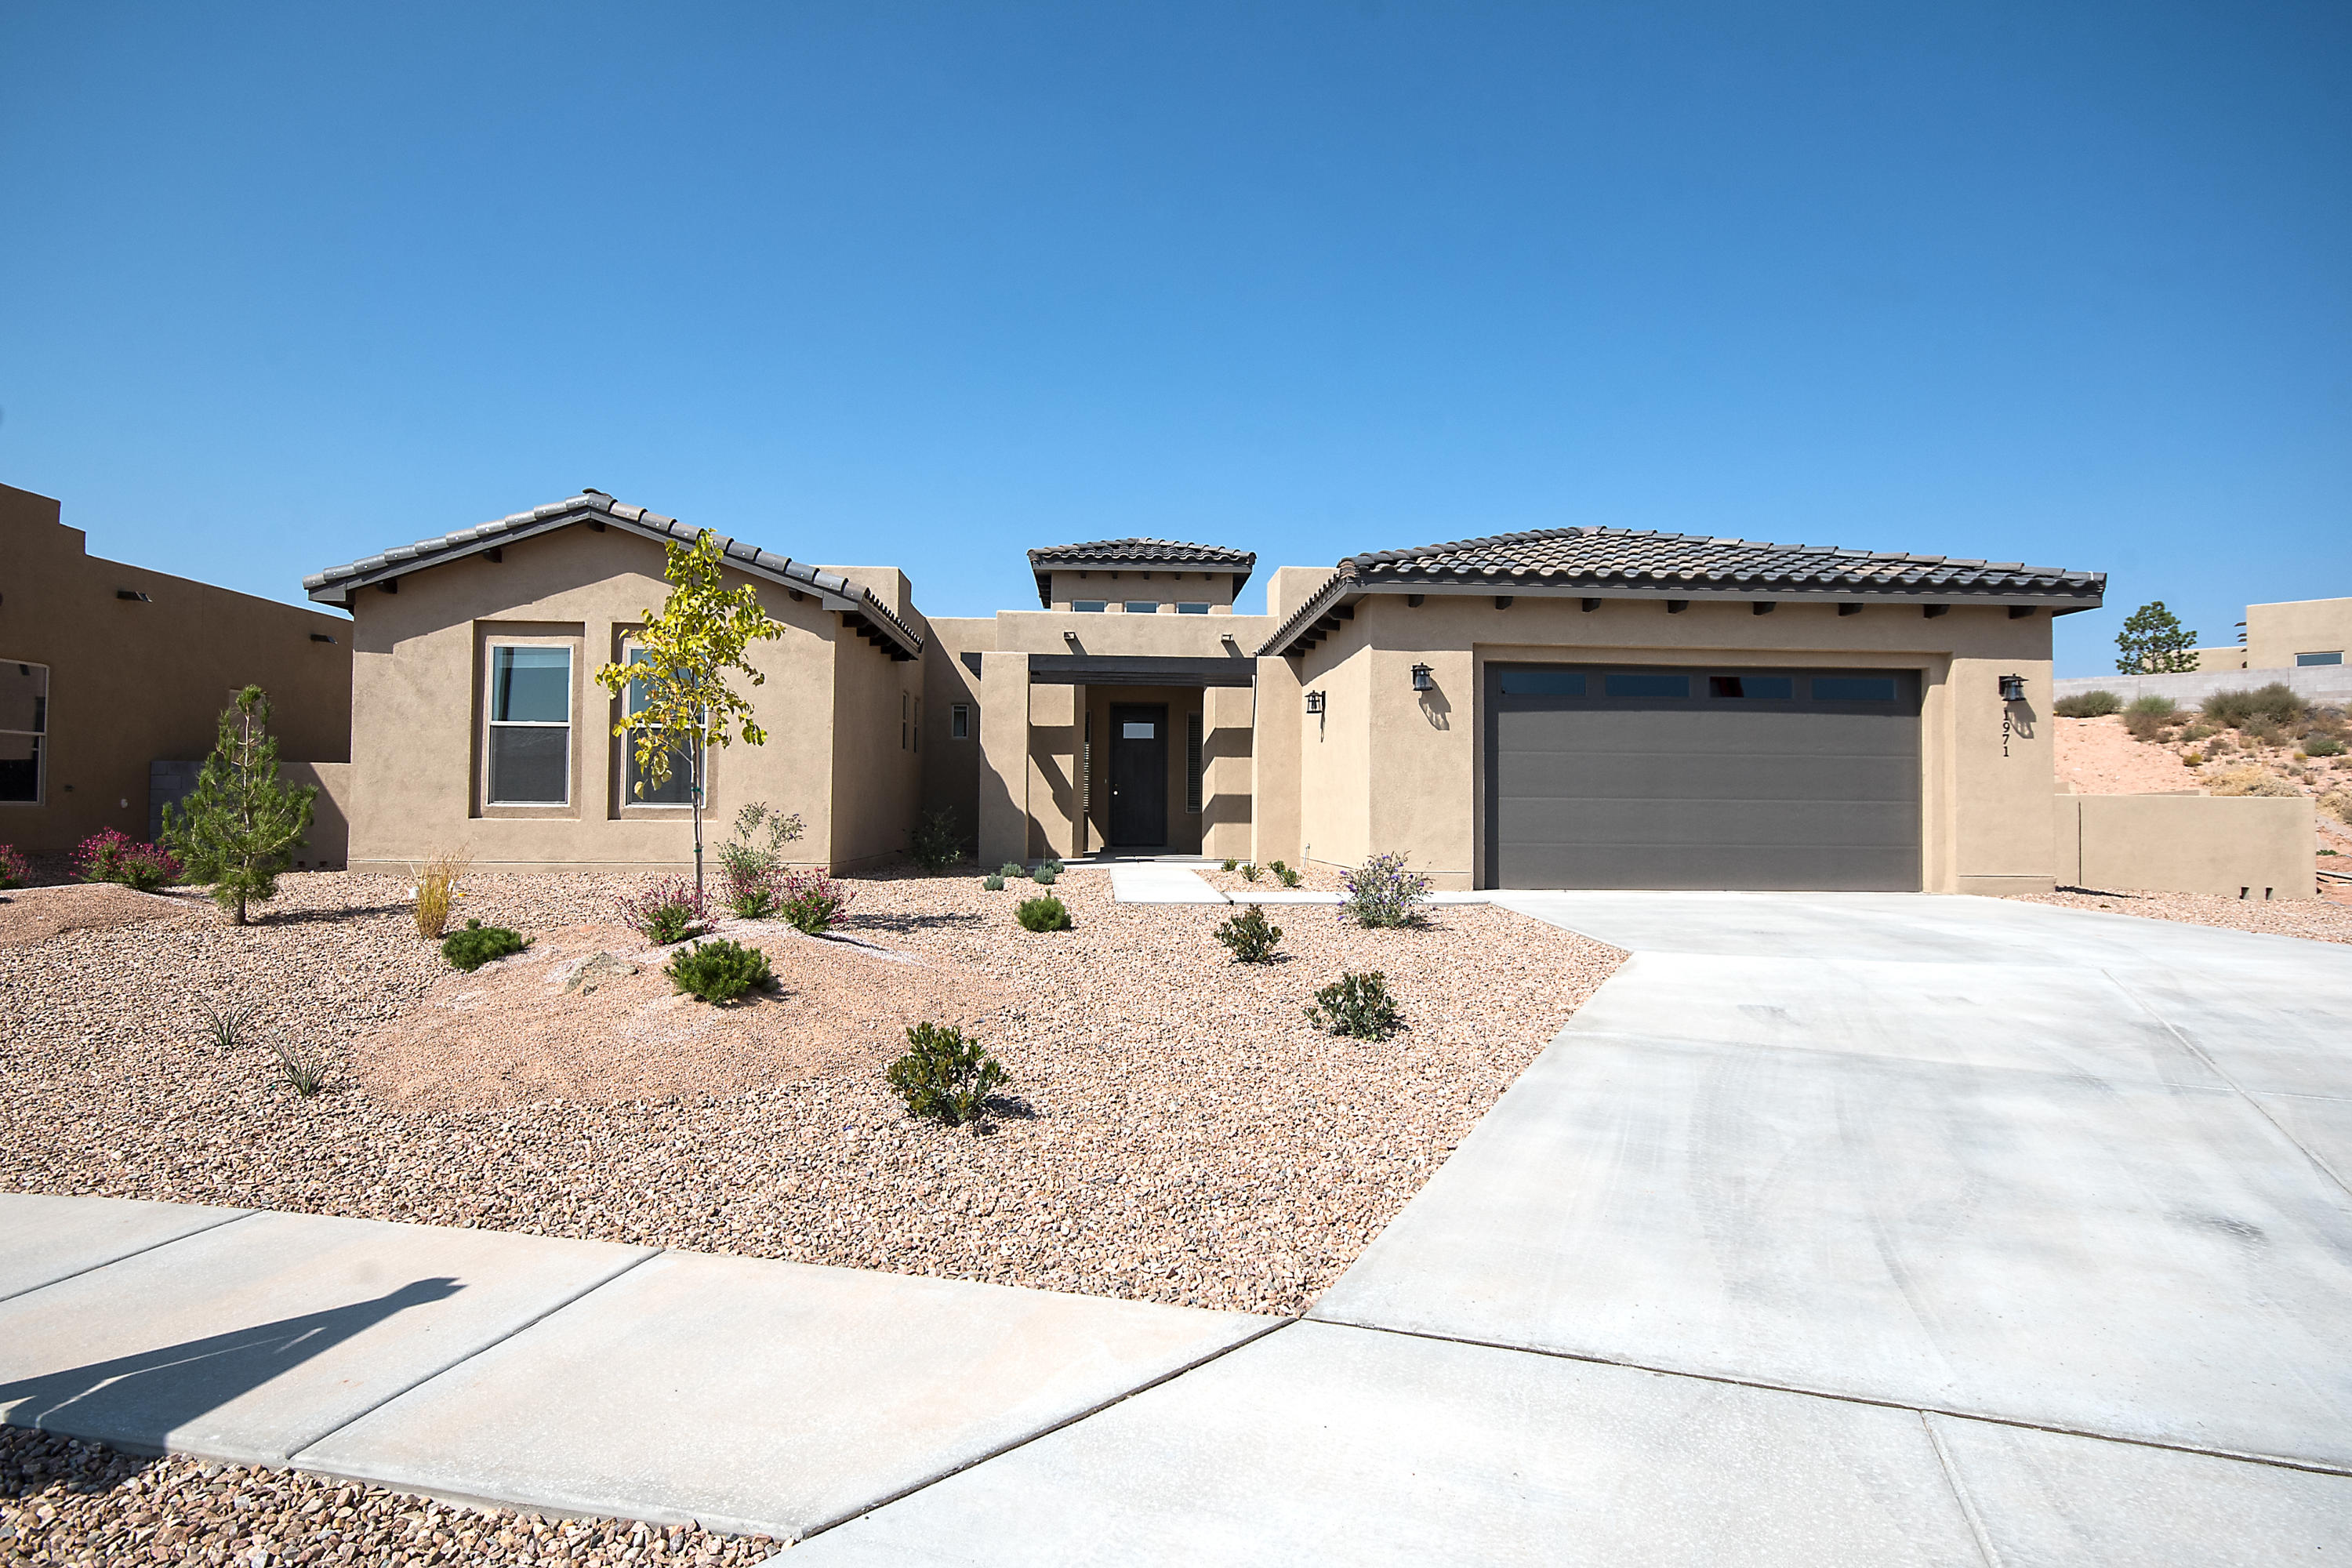 Completed and ready for an immediate move in buyer! Photos updated as of today! 10/3/2020.Located in the Gated section of Mariposa. This 'Sparkle Dunn' floor plan is a proven crowd pleaser... The open concept living area will wow you!  Gourmet kitchen boasts with beautiful cabinetry and and a back splash to compliment the built in Stainless Steel appliances.Floor Plan is in the document section of this listing.